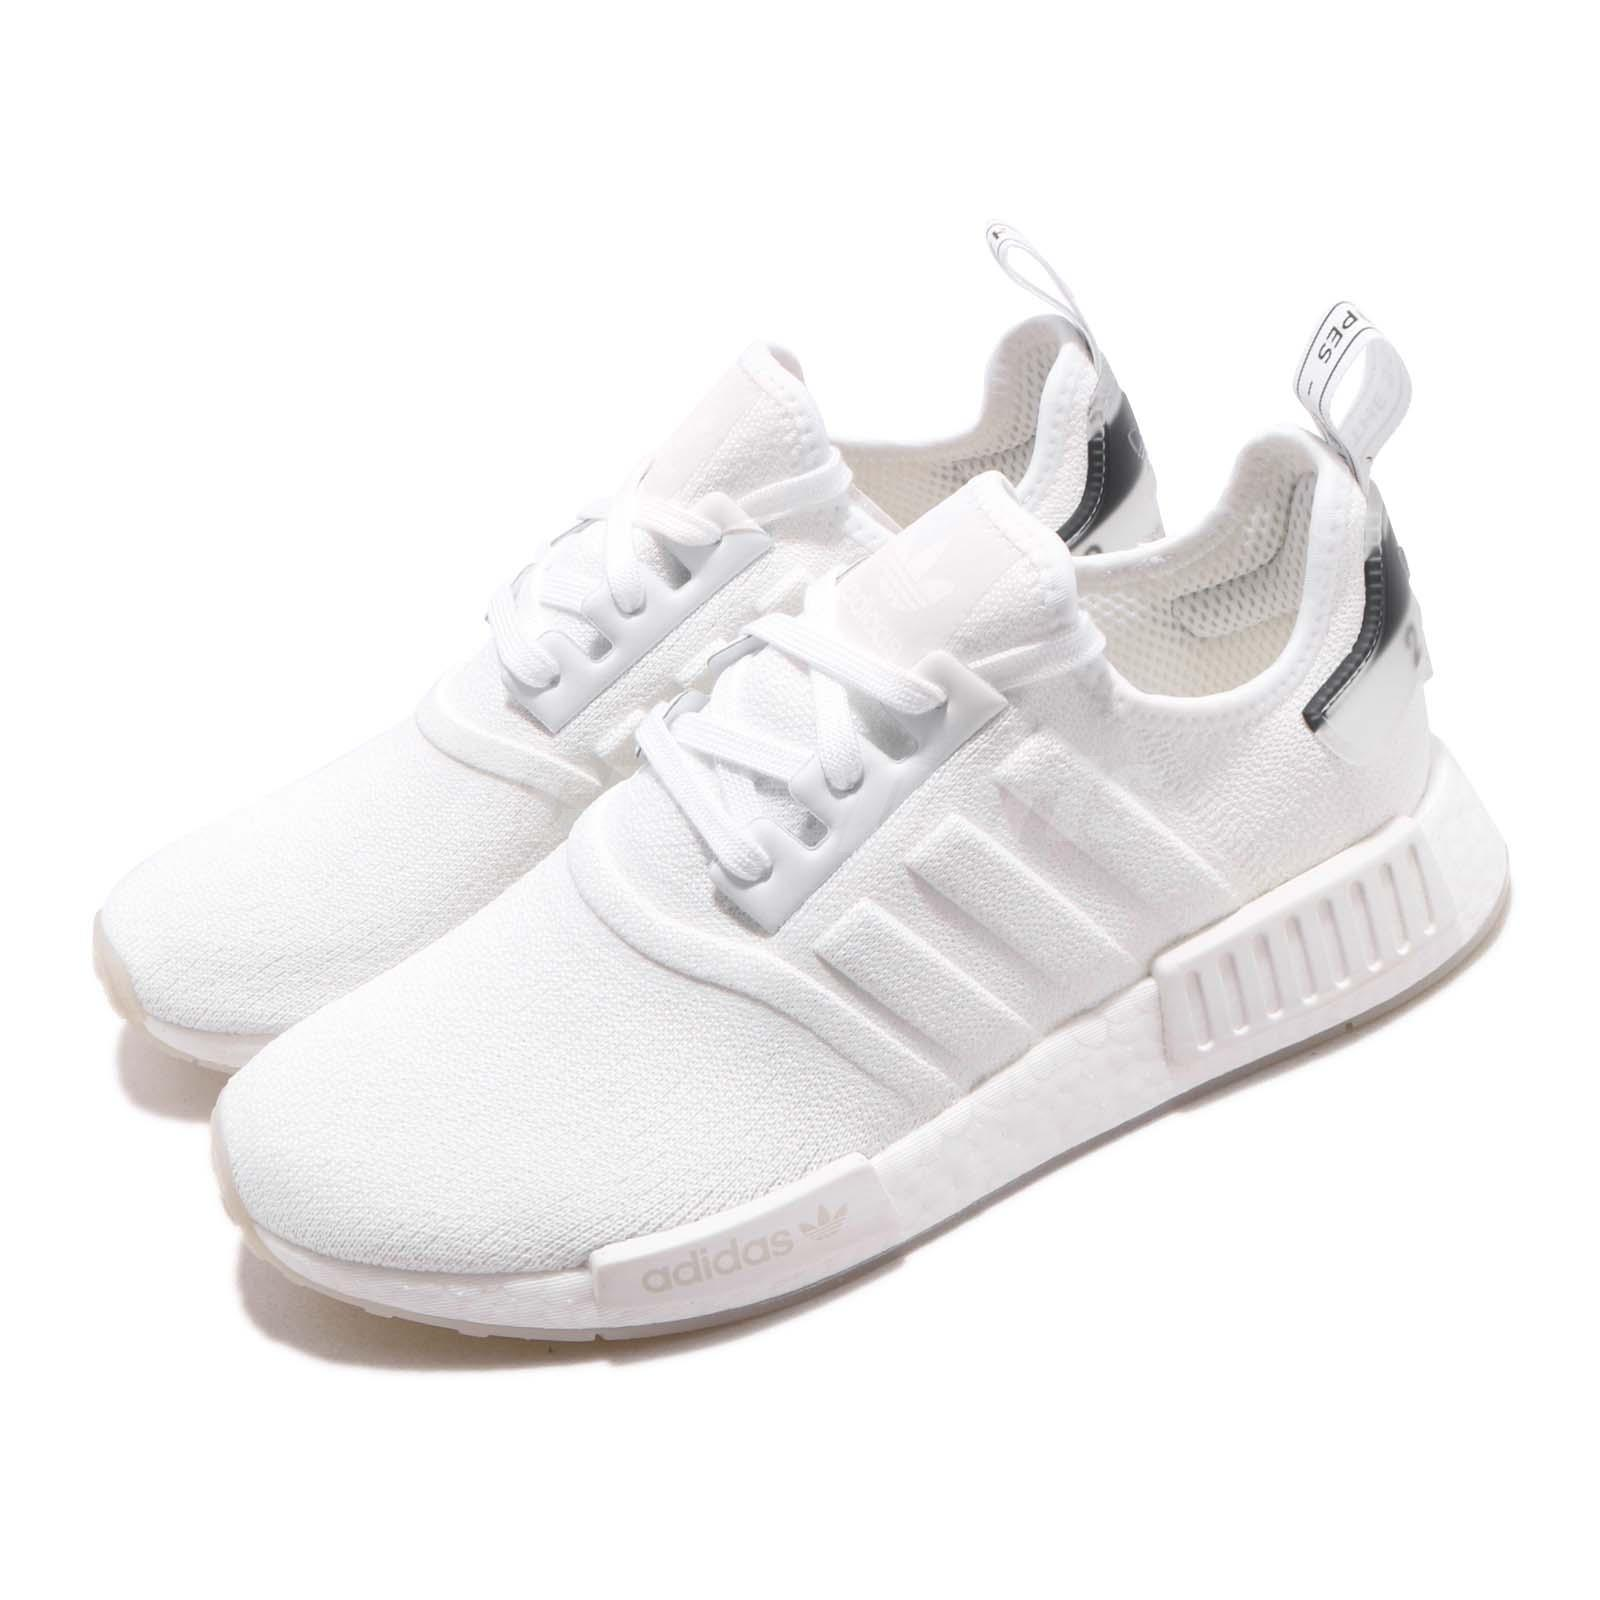 b060d14e4666a Details about adidas Originals NMD R1 Boost White Black Men Running Shoes  Sneakers BD7746